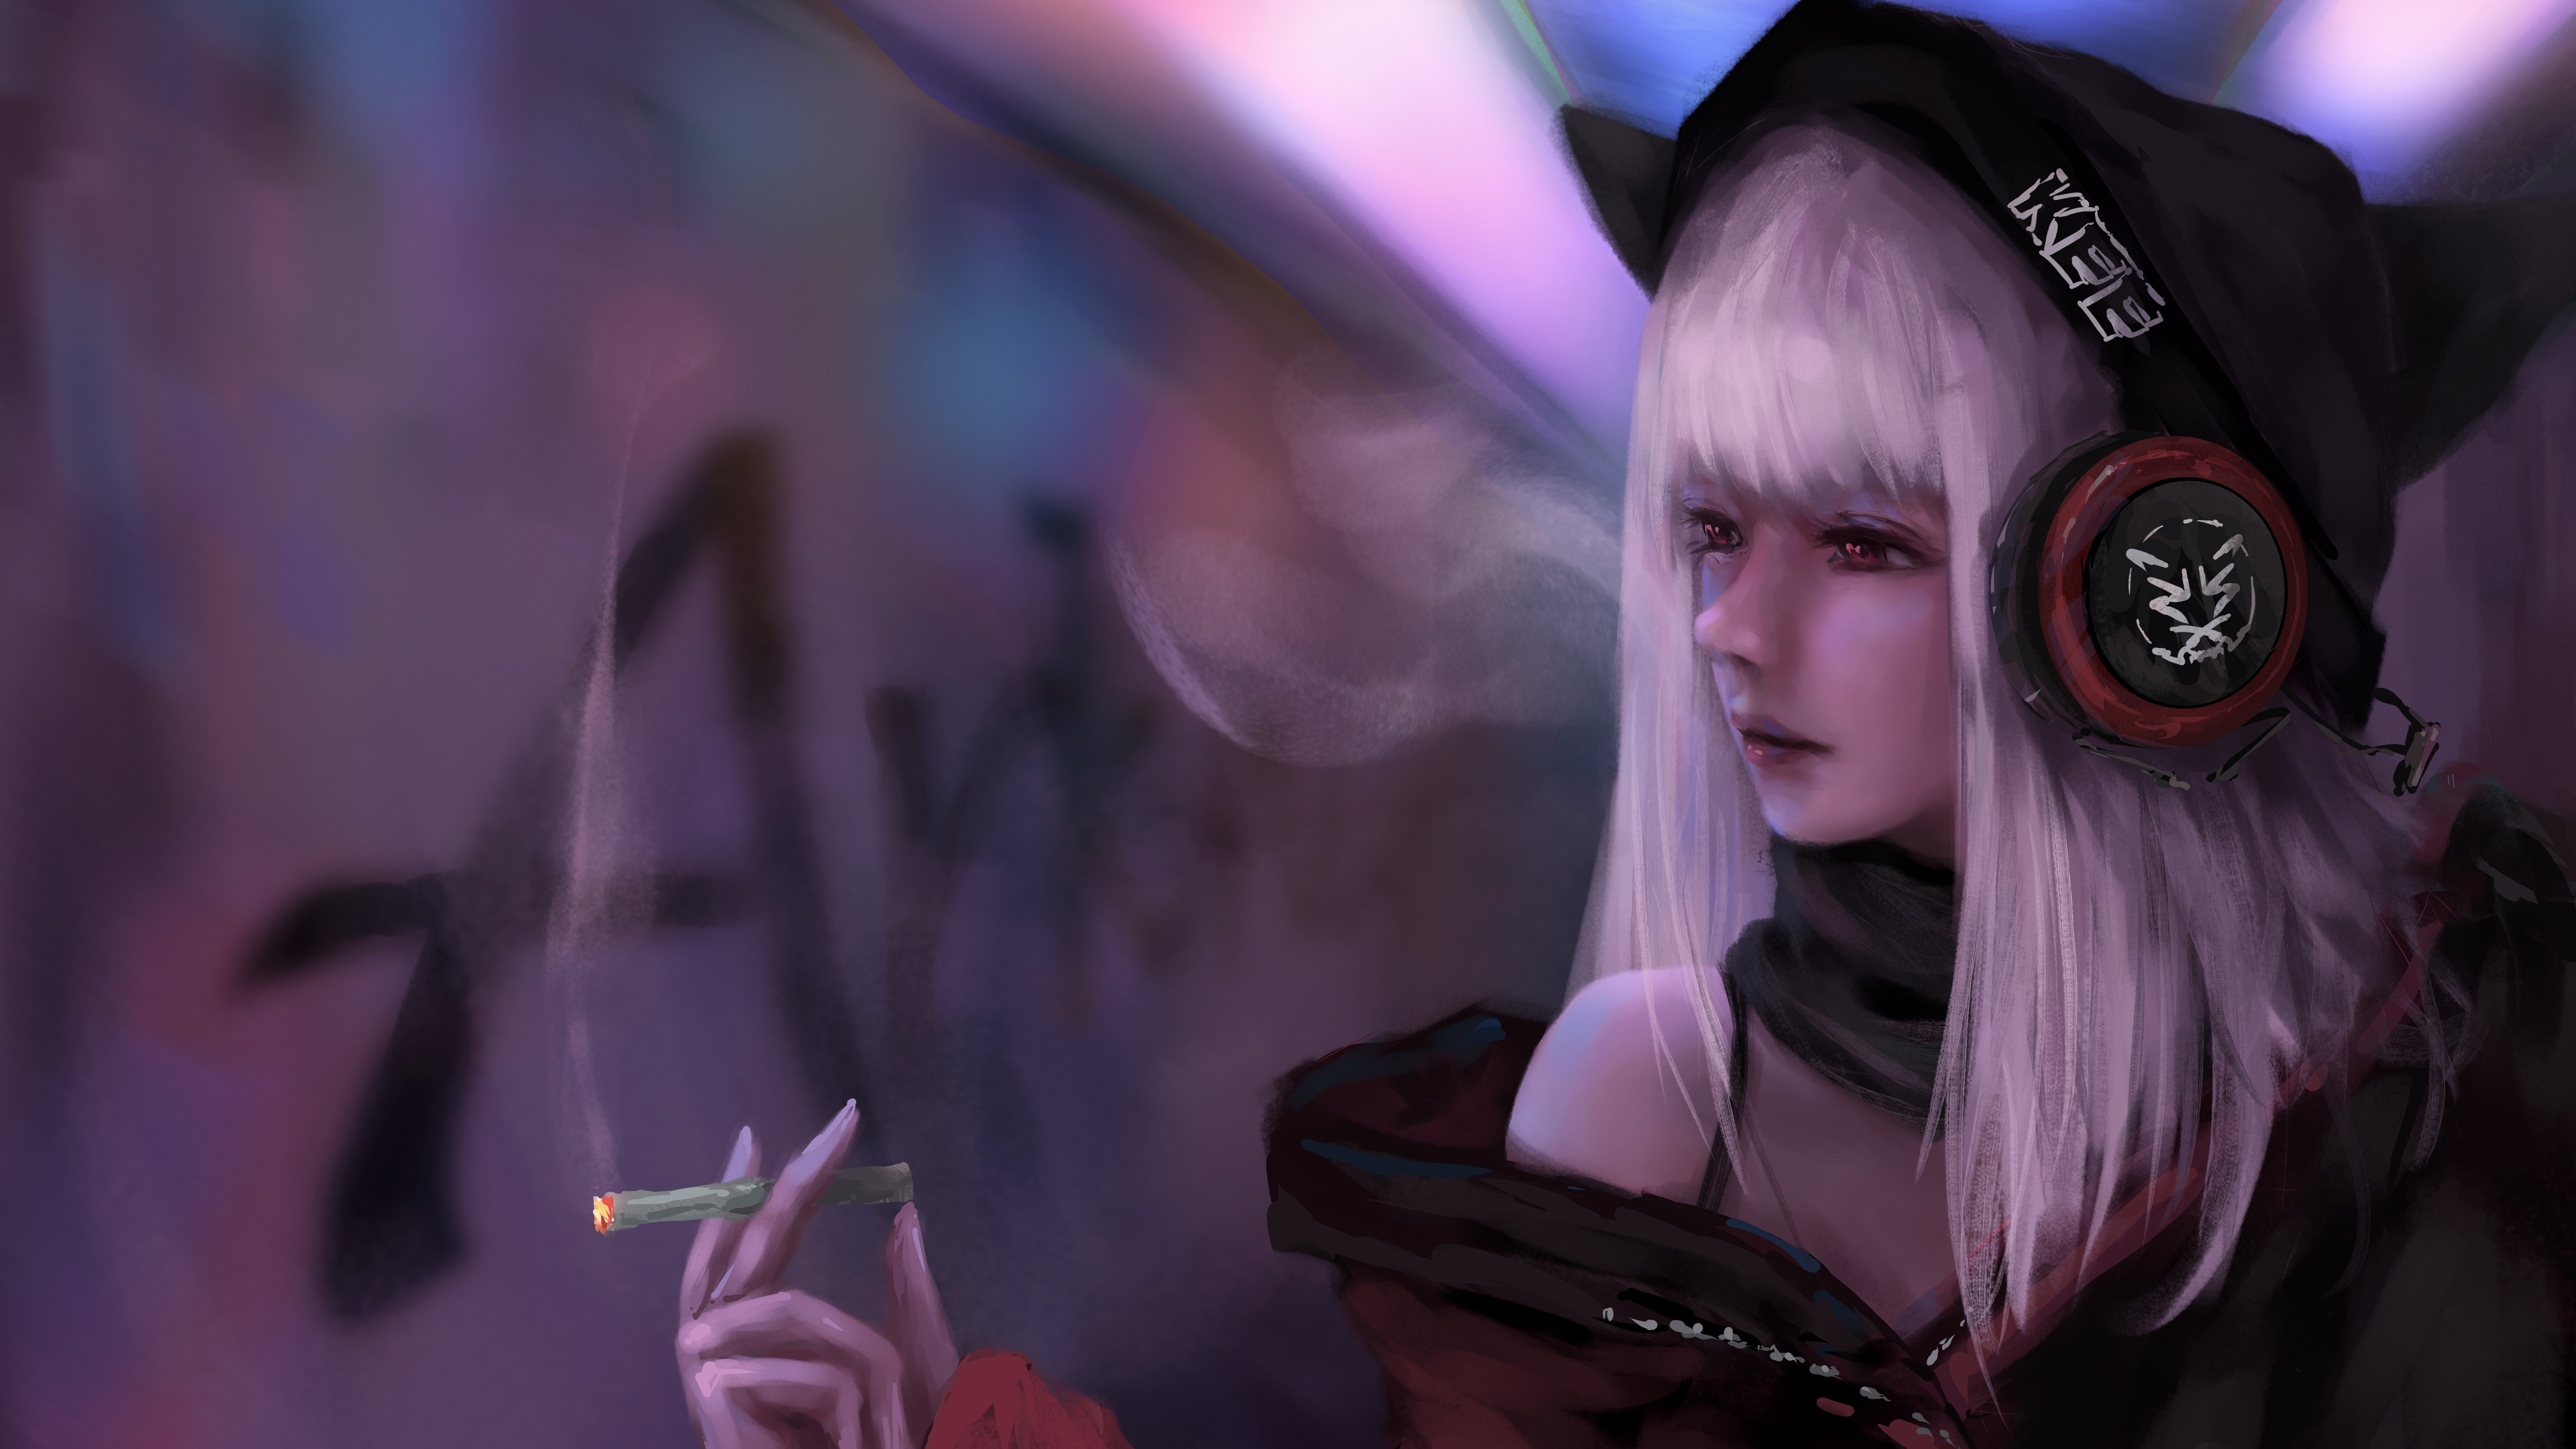 3840x2160 Anime Girl Smoking And Listening Music 8k 4k Hd 4k